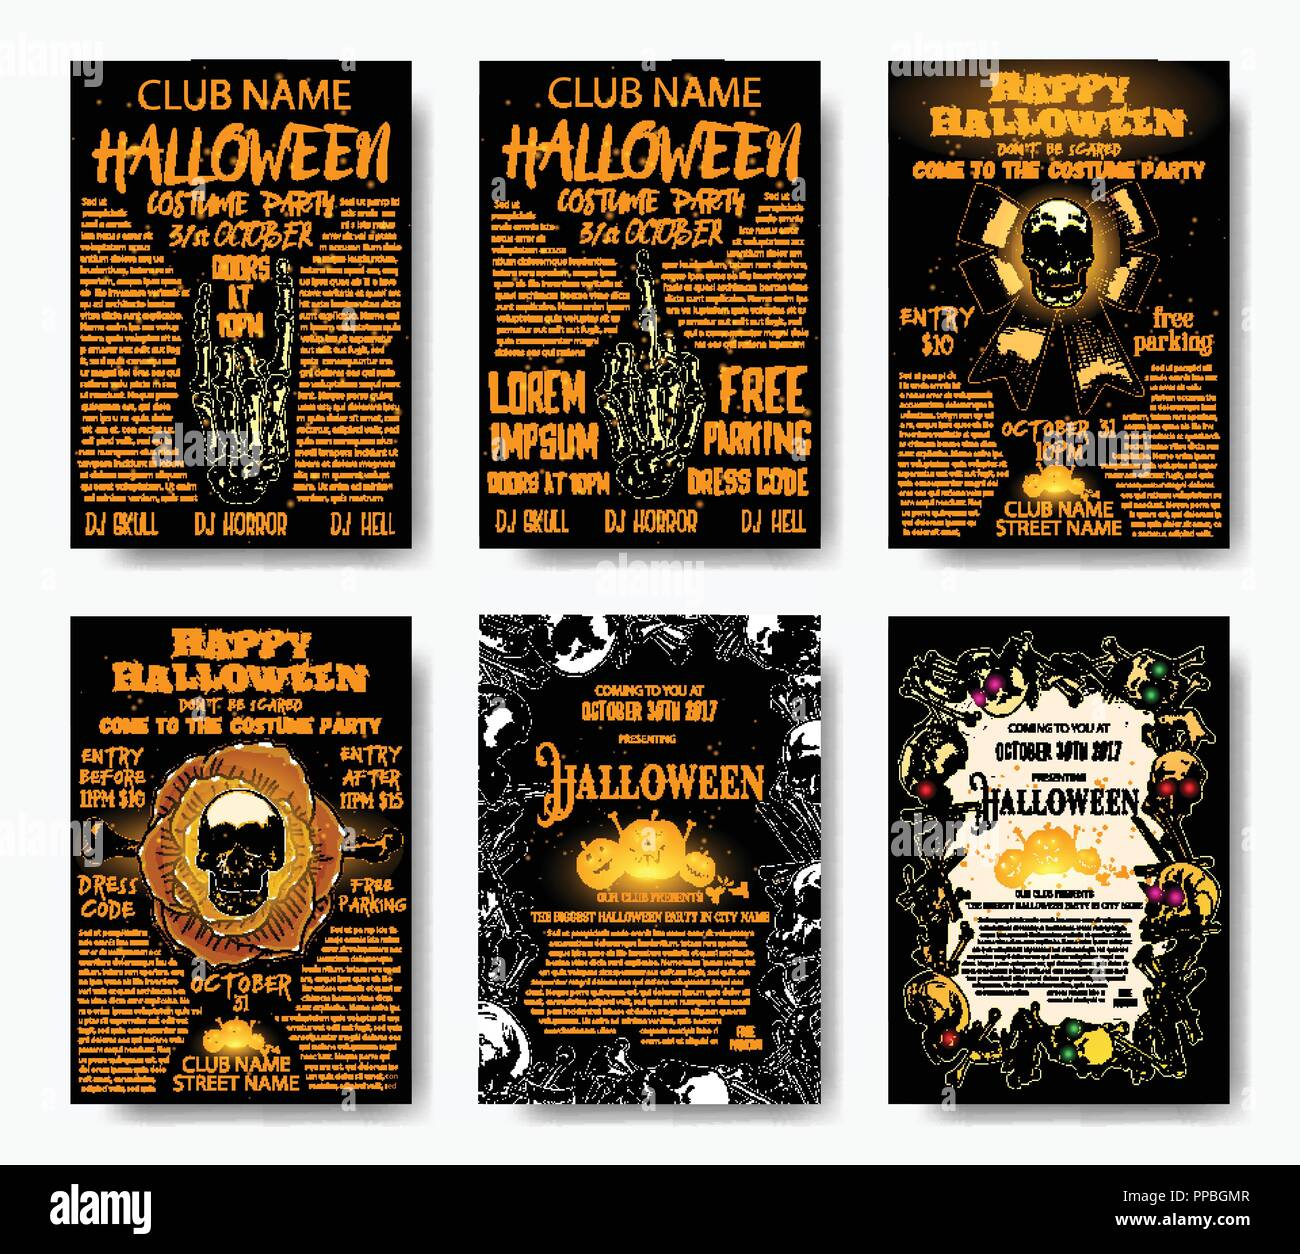 halloween costume party flyer royalty free costume party clip art